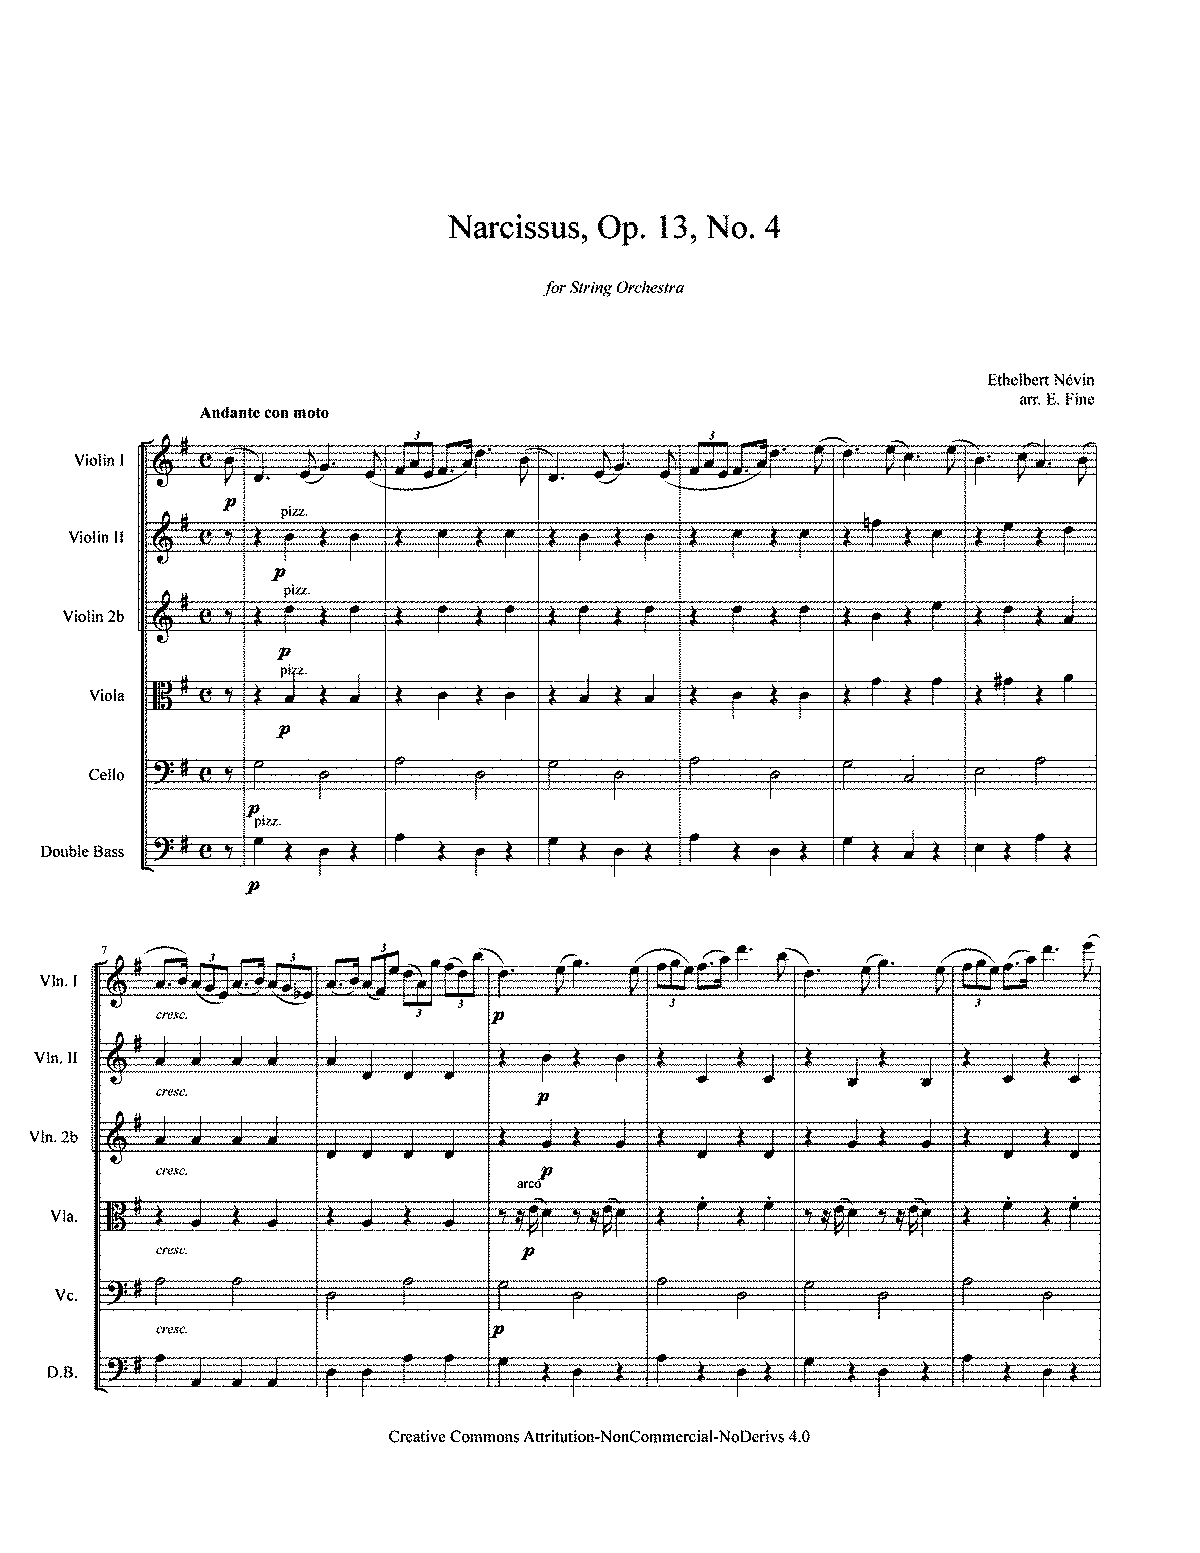 PMLP21529-Narcissus for String Orchestra Score and Parts.pdf